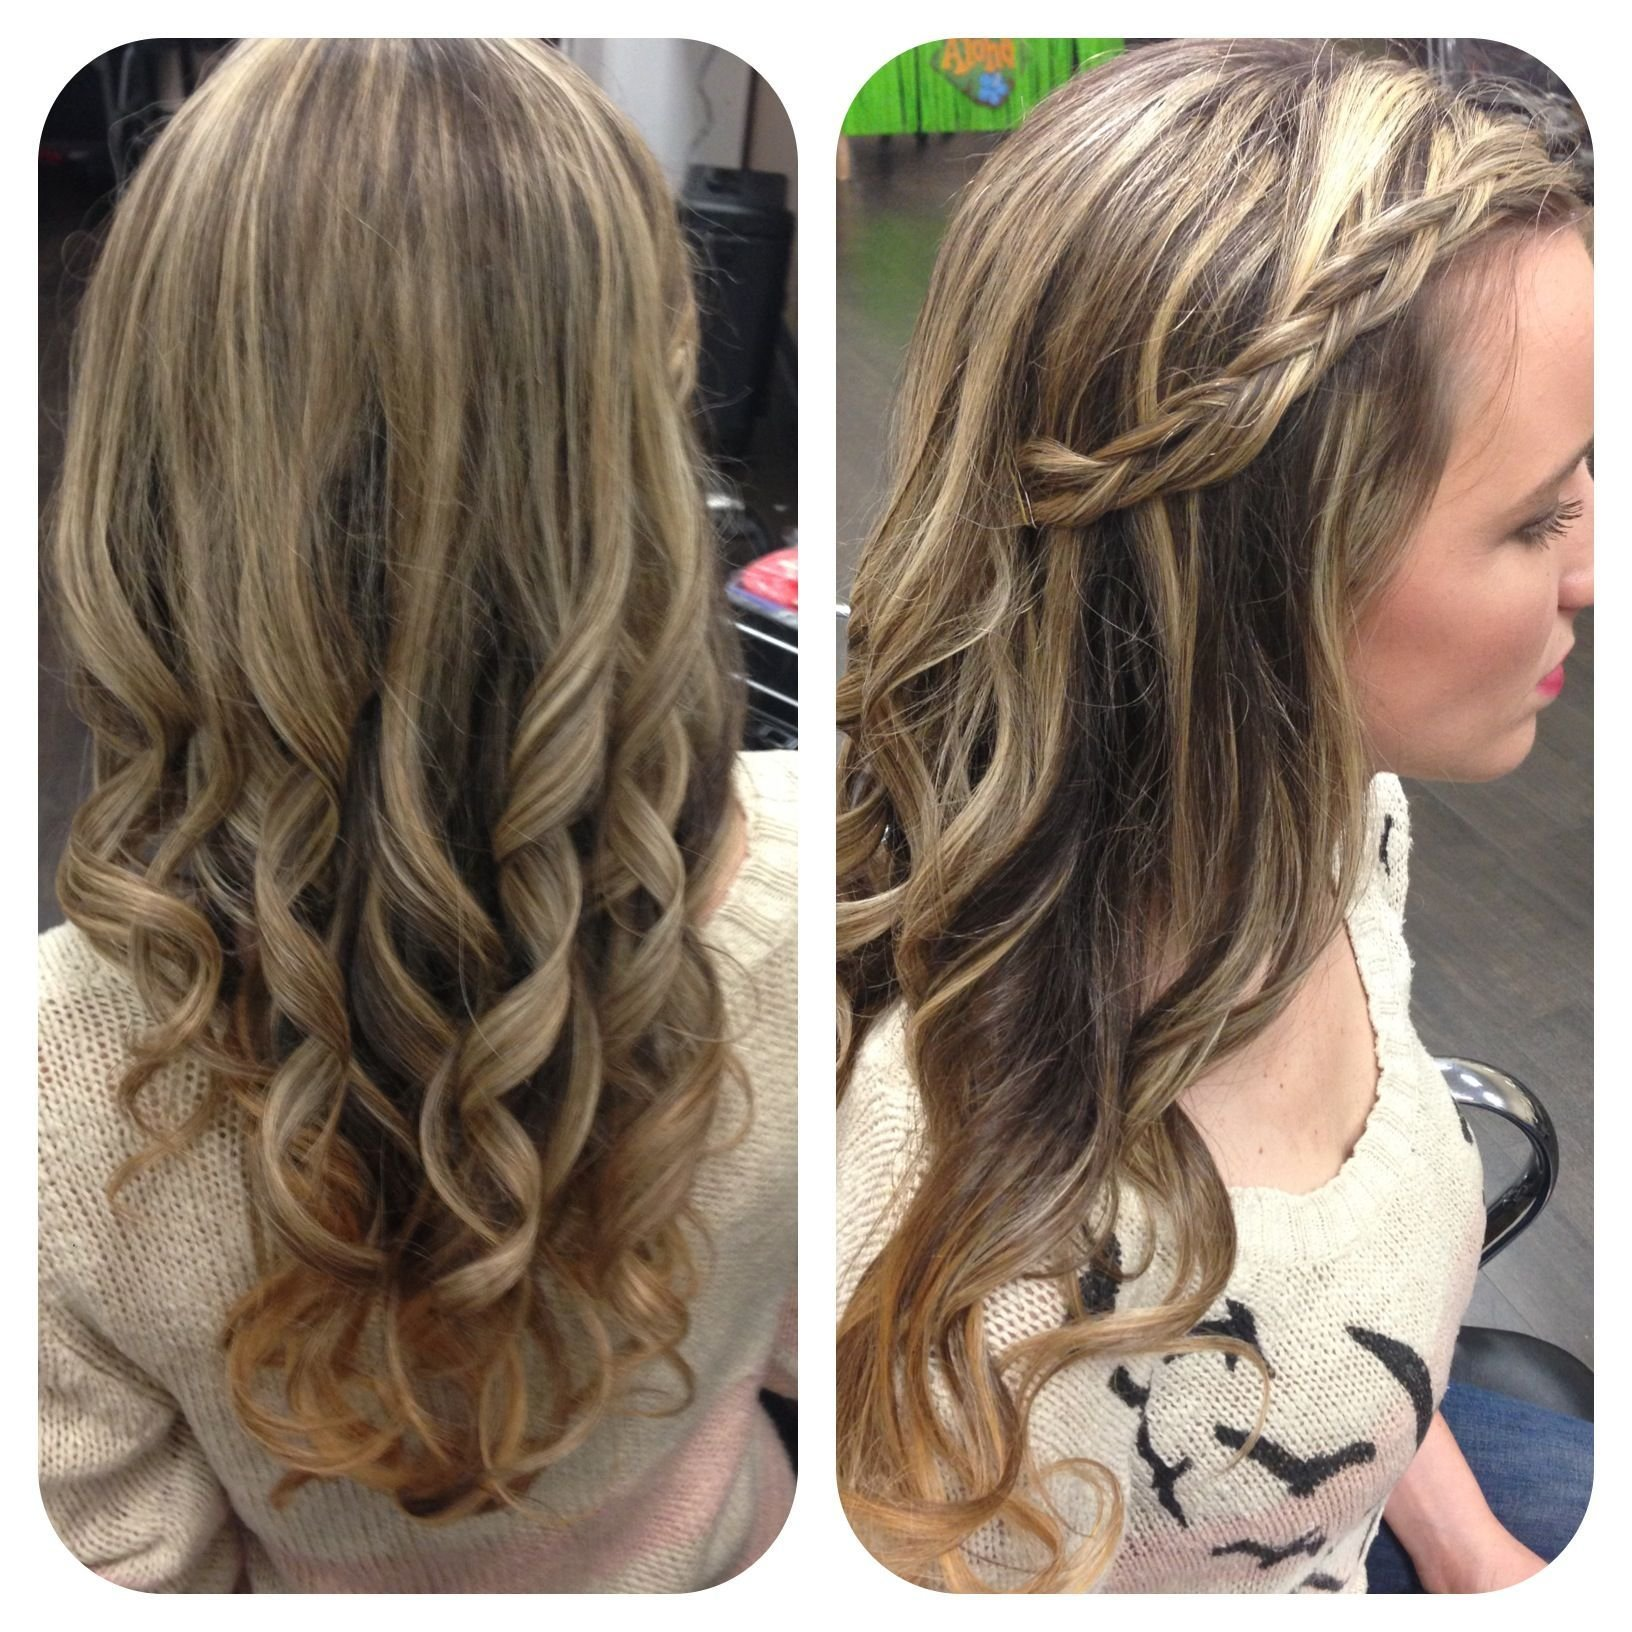 The Best Simple Hair For Graduation Day Hair By Shanae Hair By Pictures